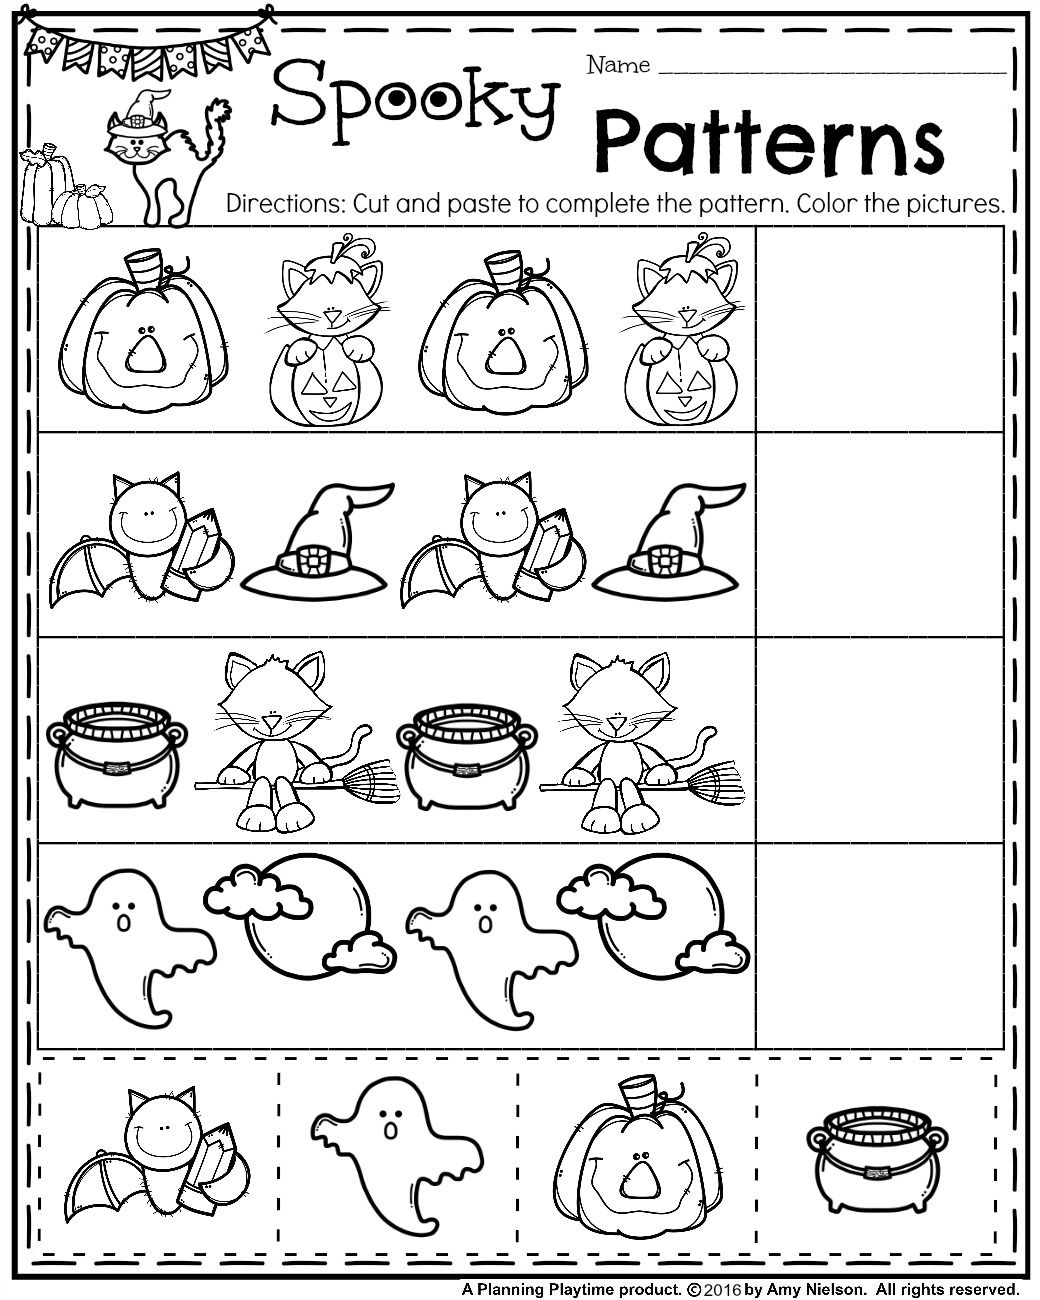 october preschool worksheets preschool activities. Black Bedroom Furniture Sets. Home Design Ideas